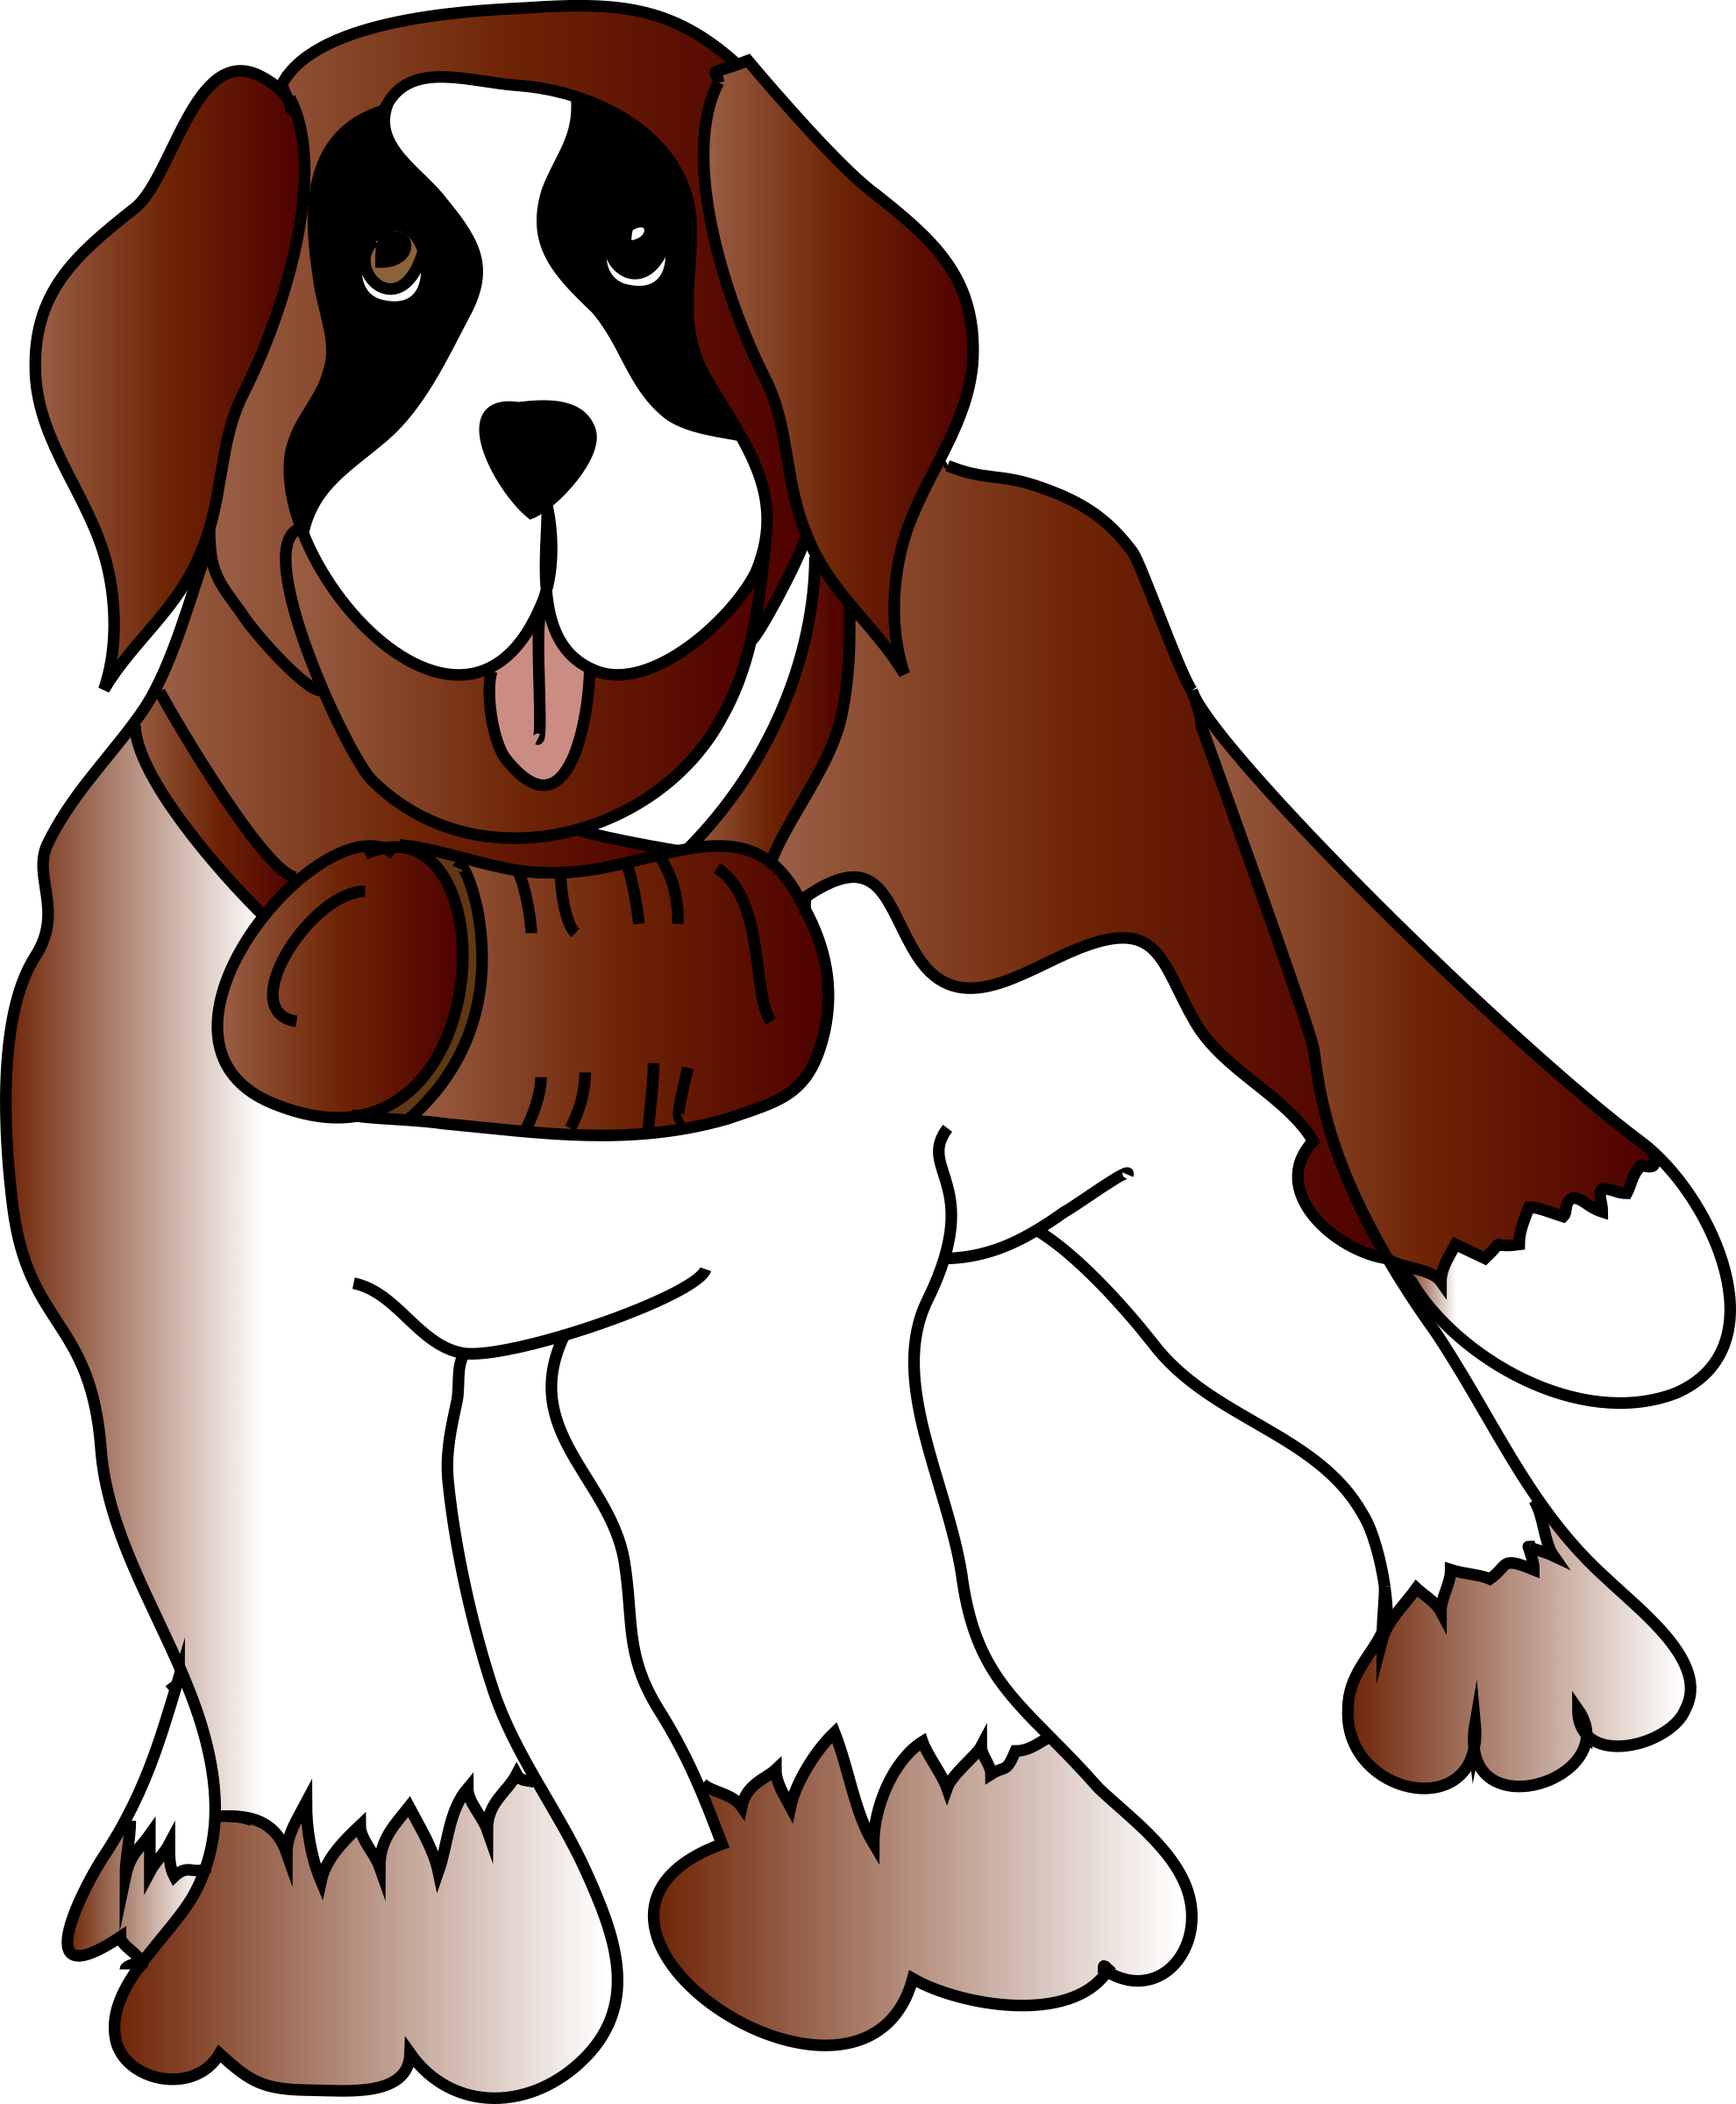 Saint Bernard svg #1, Download drawings